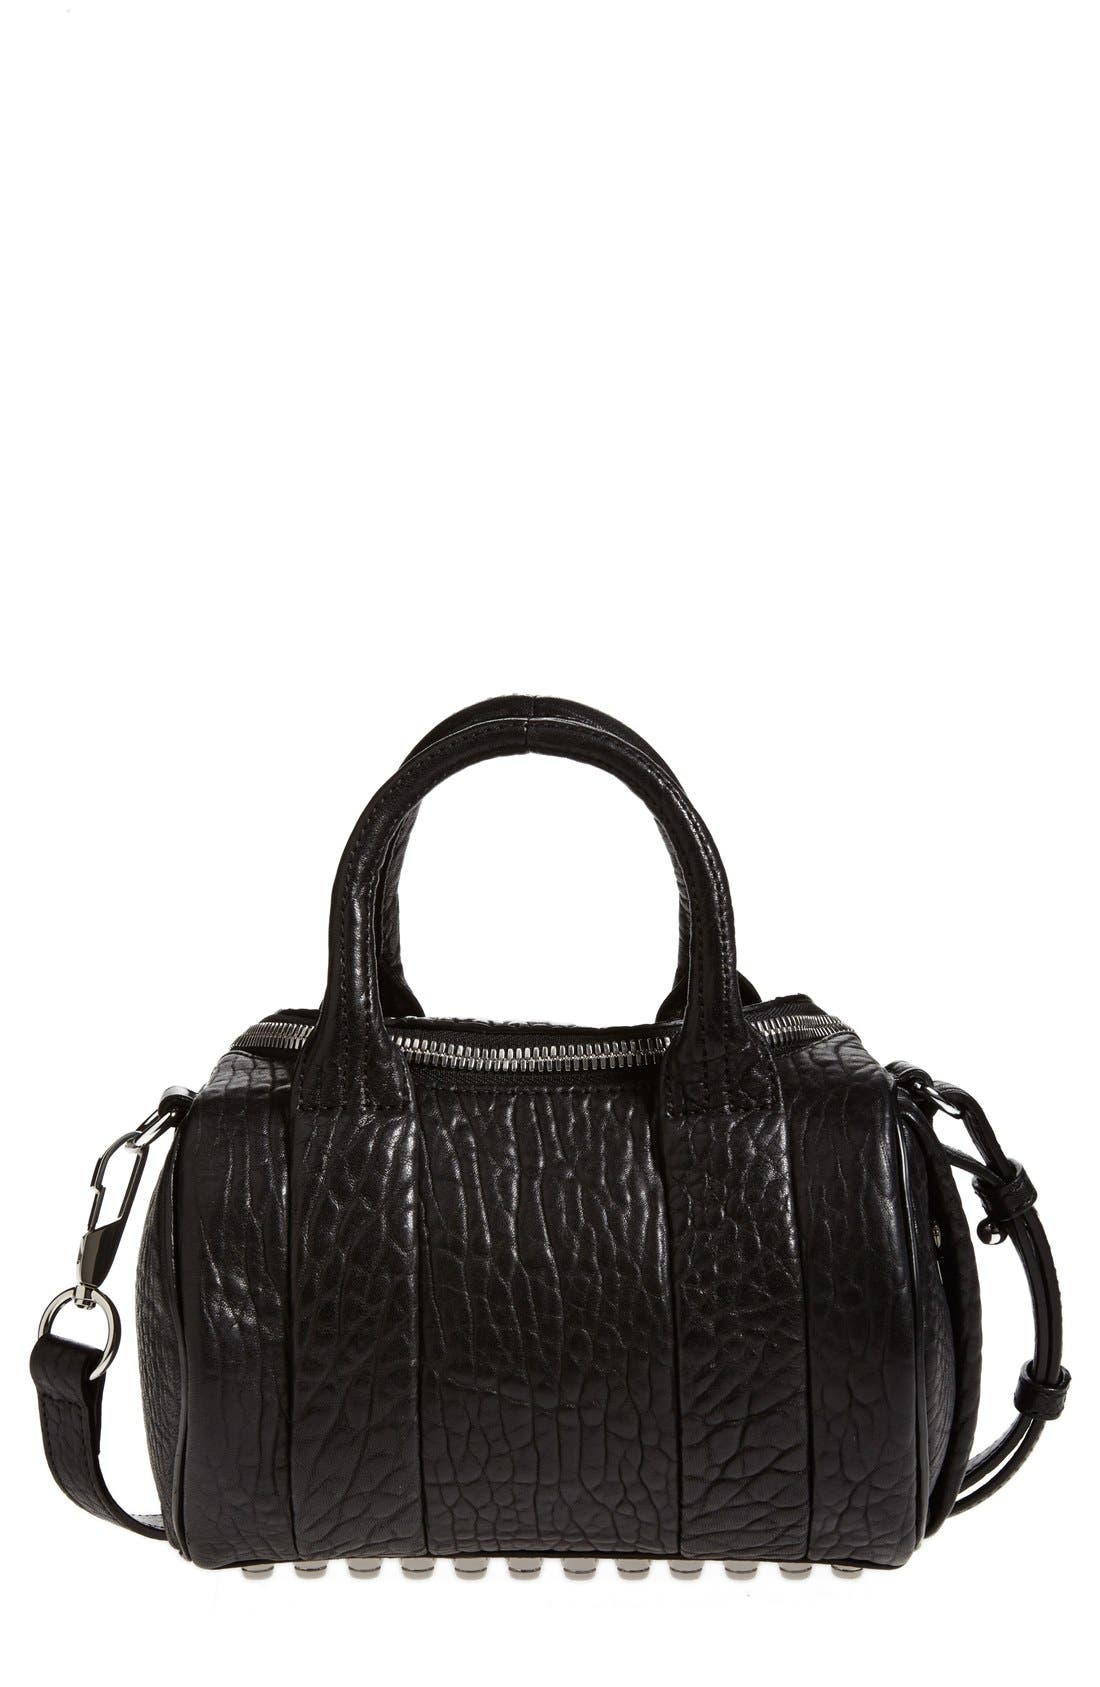 Alternate Image 1 Selected - Alexander Wang 'Mini Rockie - Nickel' Leather Crossbody Satchel